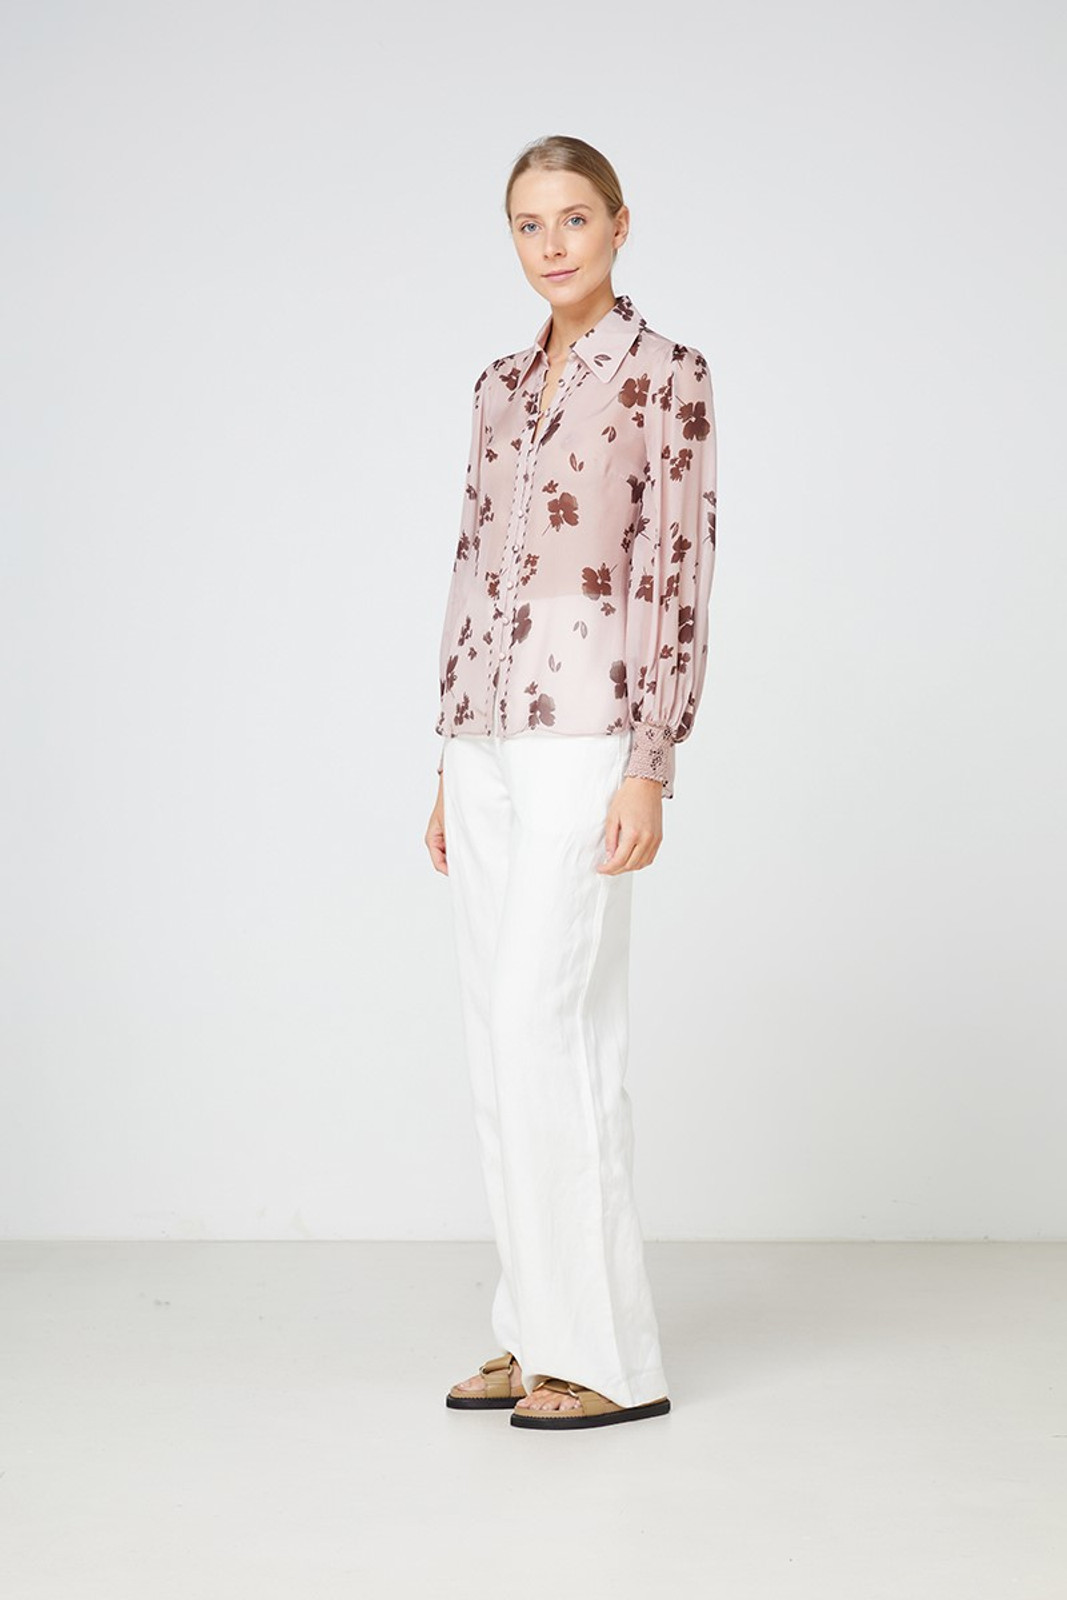 Elka Collective Portofino Shirt Pink  3